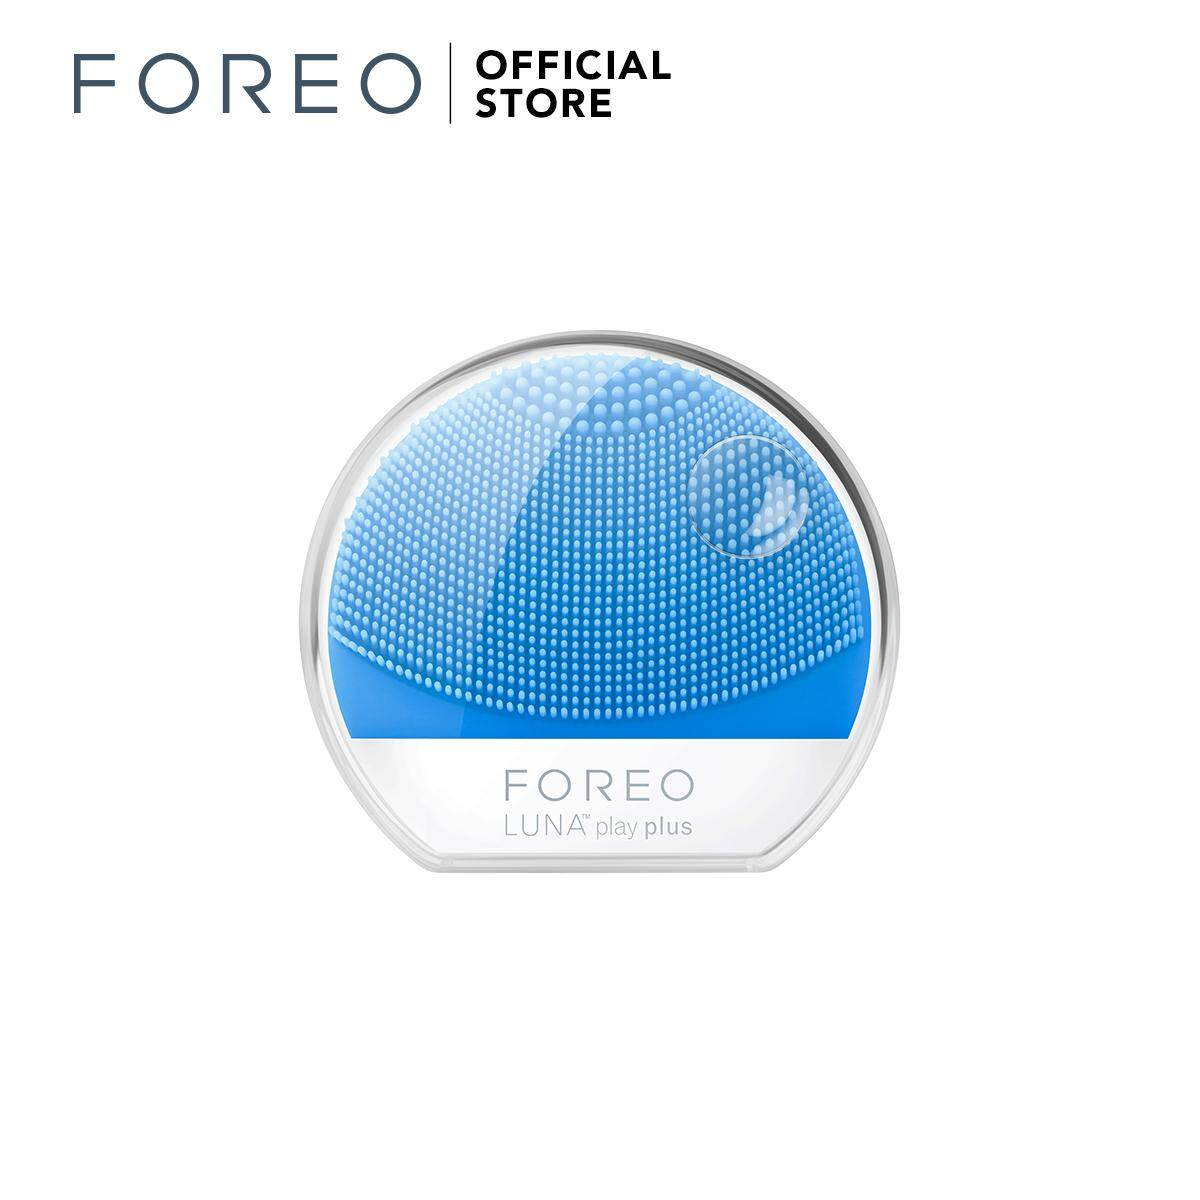 พัทลุง FOREO LUNA play plus Aquamarine